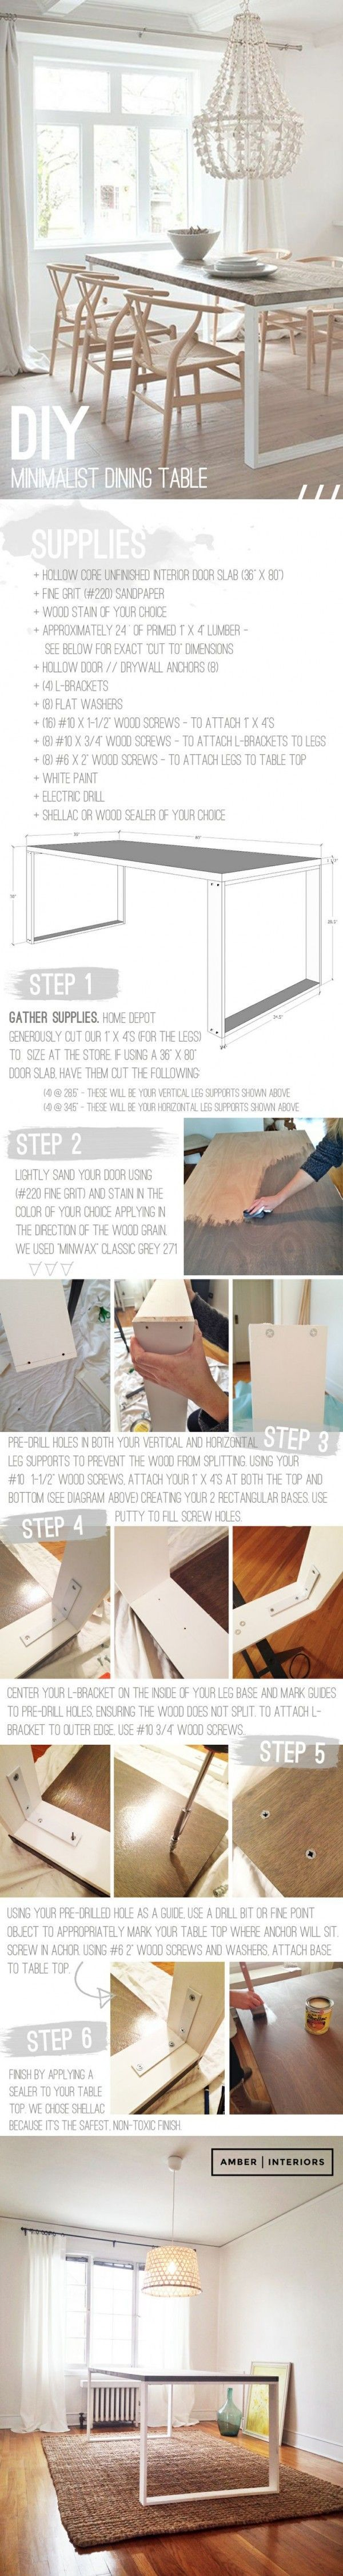 Best Diy Crafts Ideas For Your Home : Check out how to easily make a ...